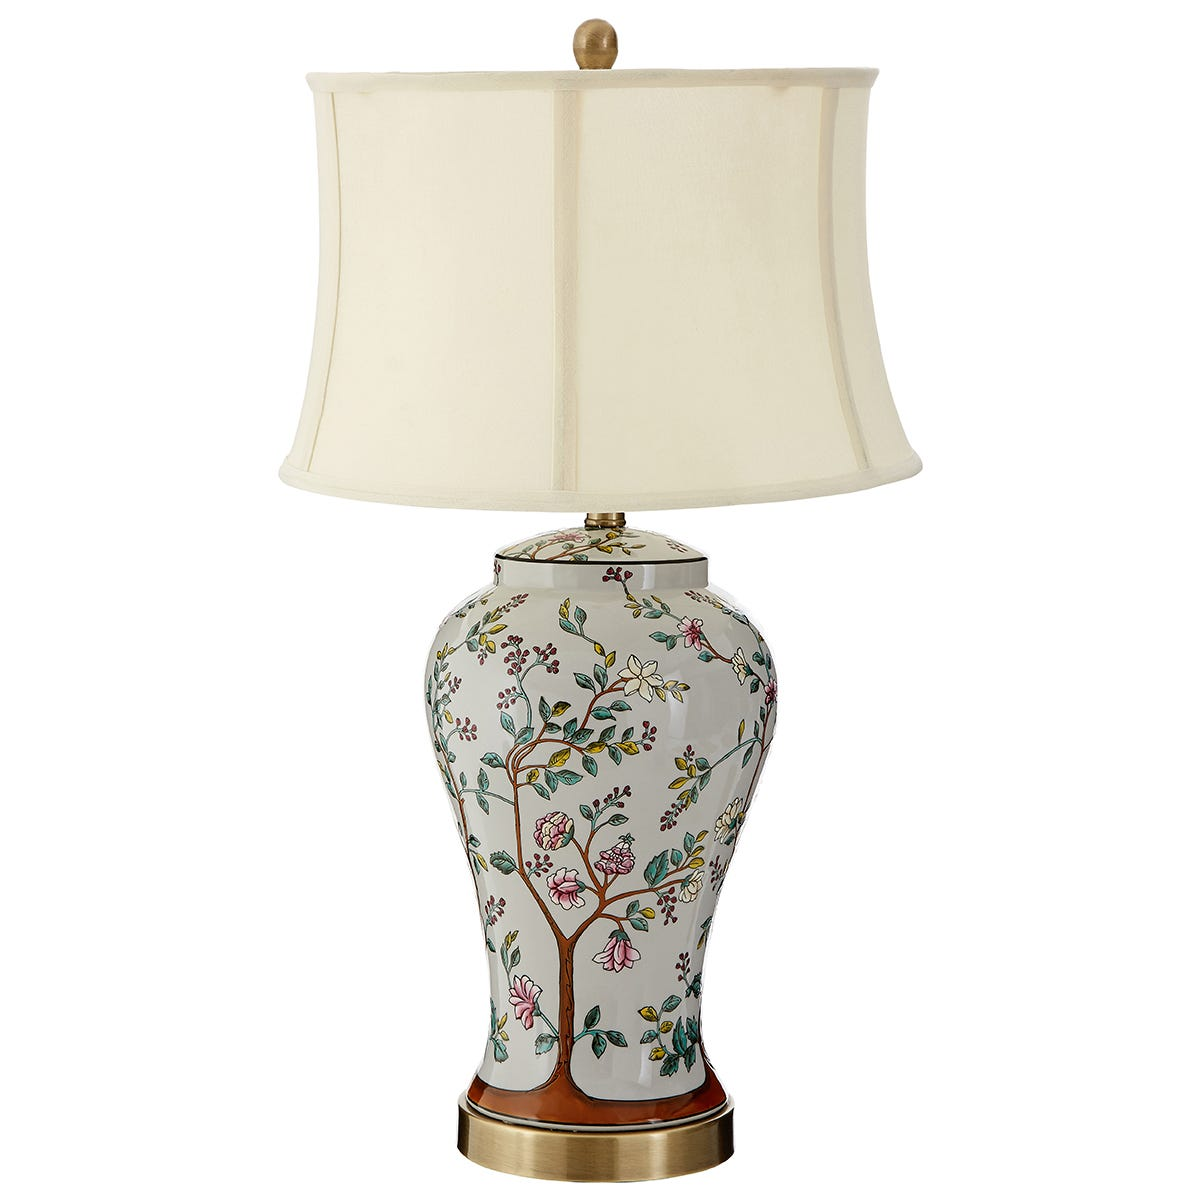 Premier Housewares Covent Table Lamp with Metal/Ceramic Base & Cream Fabric Shade